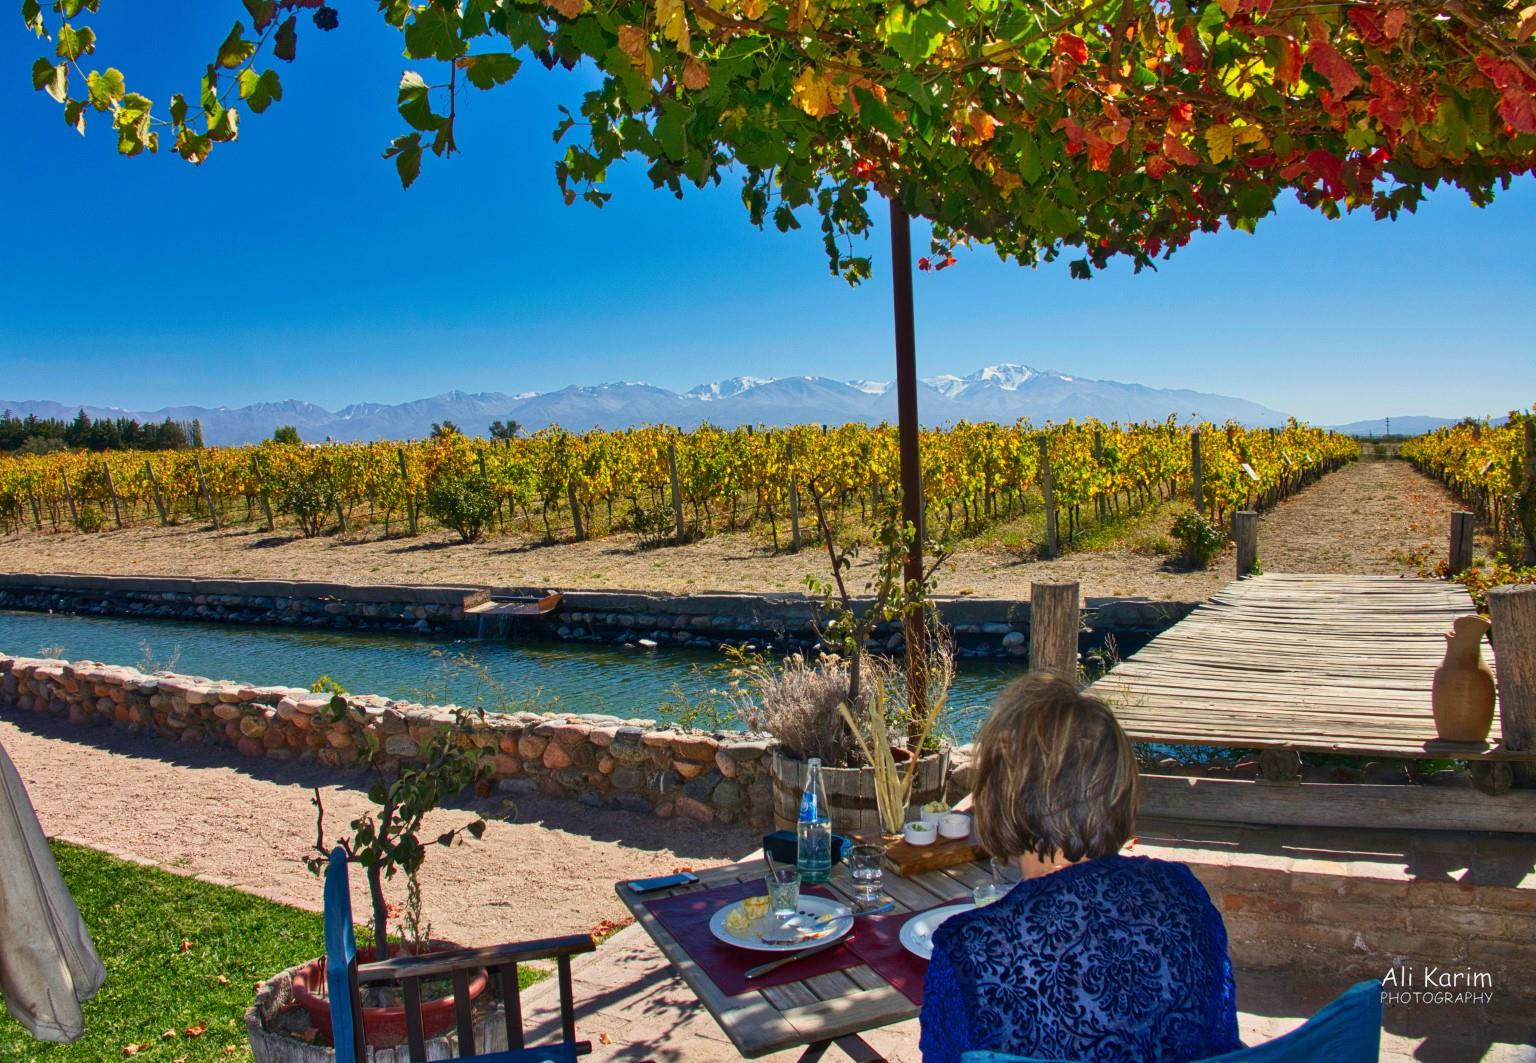 Mendoza, Argentina Beautiful restaurant location amongst wineries with a backdrop of the snowcapped Andes